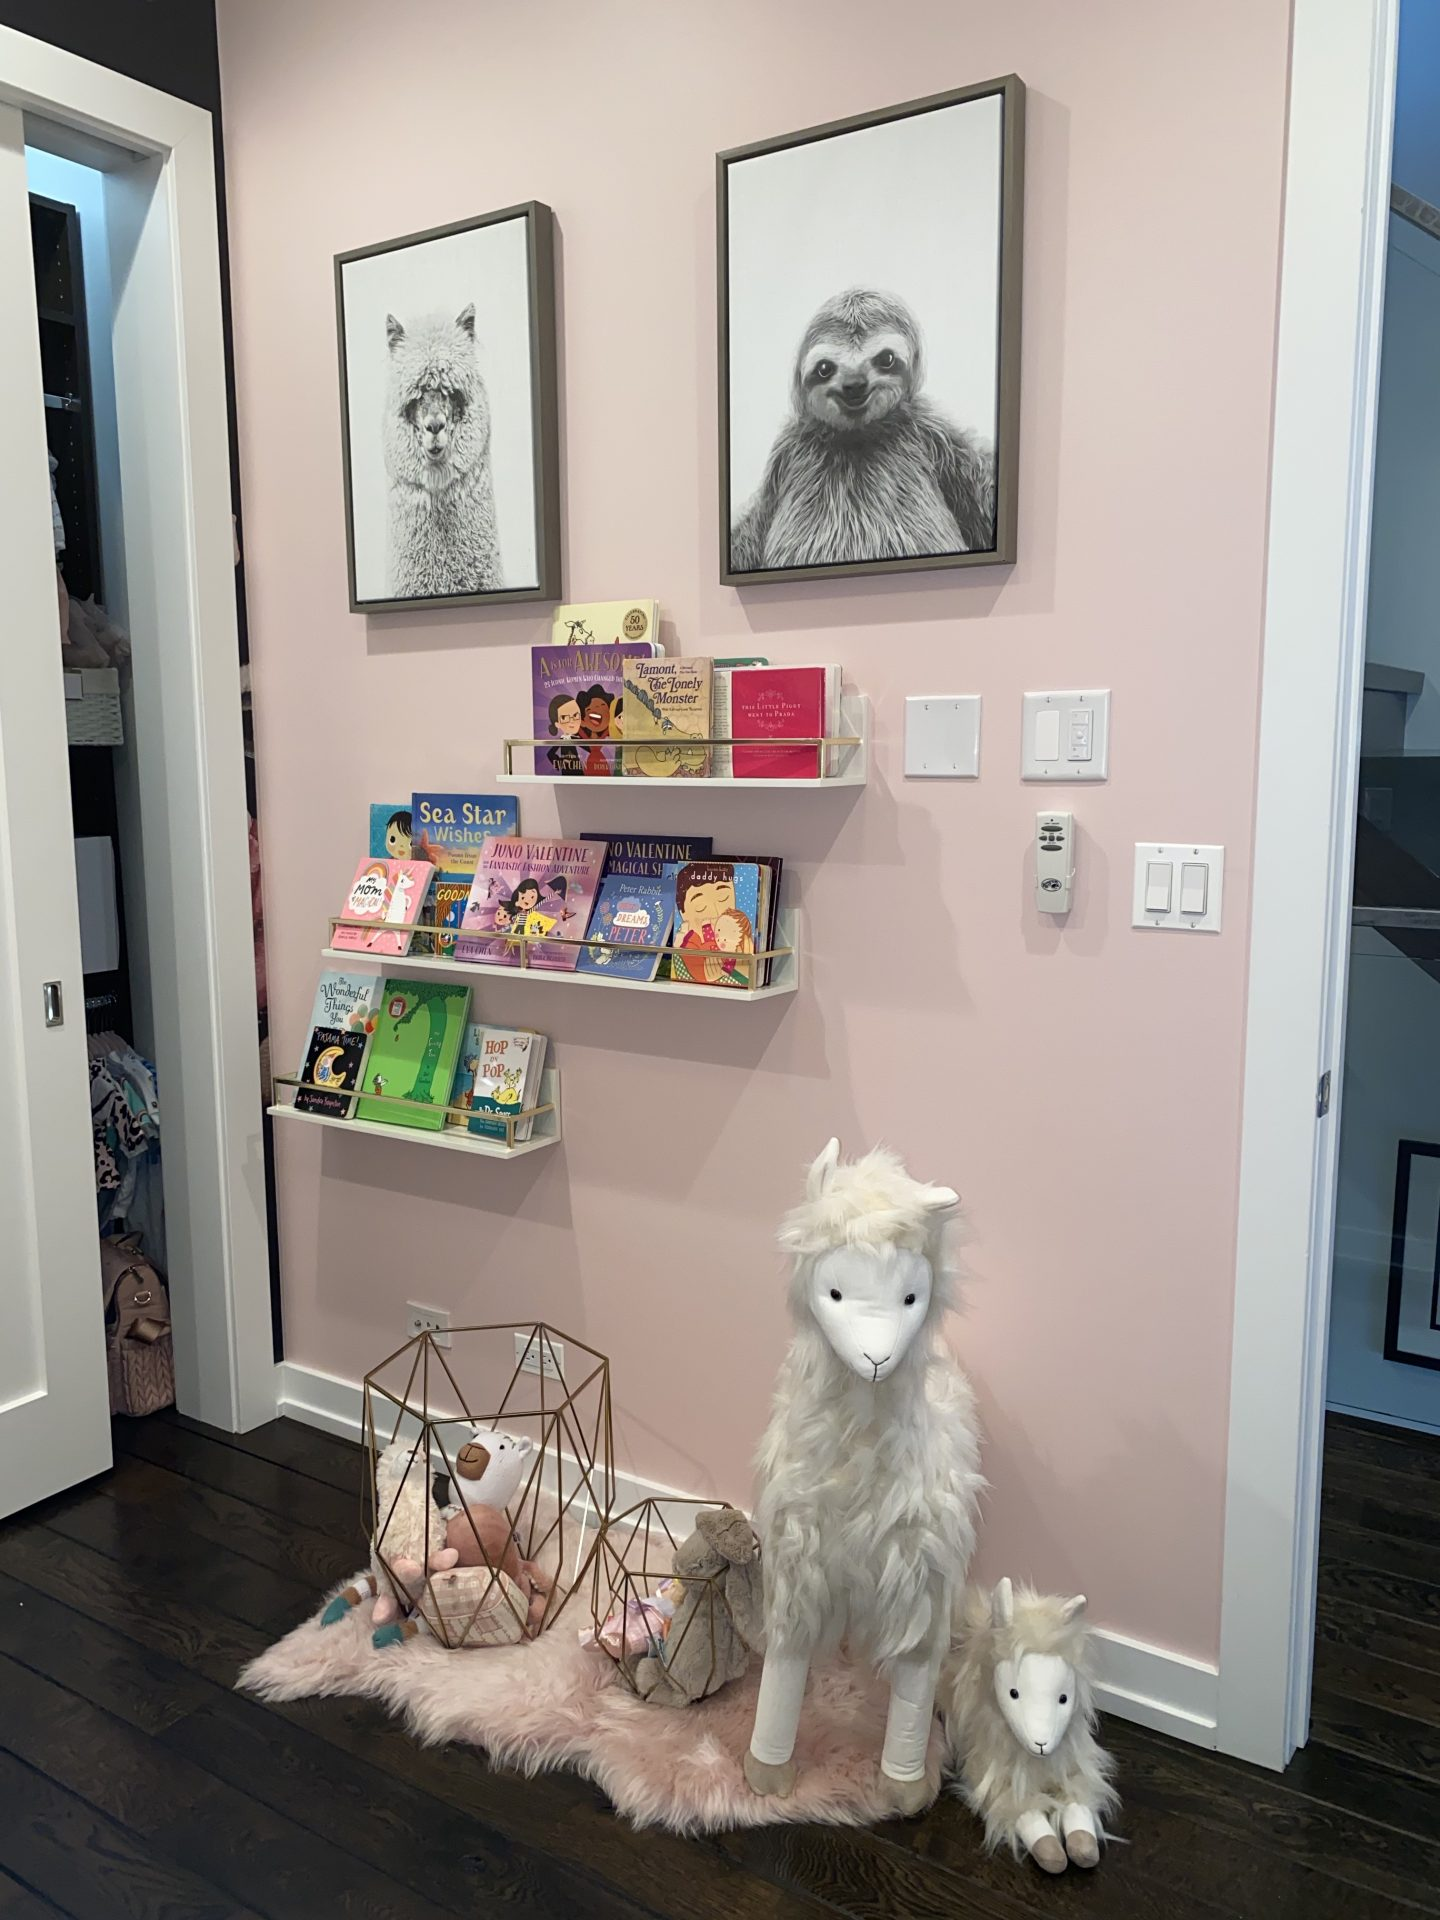 girl nursery, pottery barn kids, nursery inspiration, girl room, pottery barn kids nursery, chic nursery, nursery ideas, nursery must haves, girl nursery favorites, nursery items, nursery furniture, mom blogger, Chicago mom, mommy blogger, motherhood